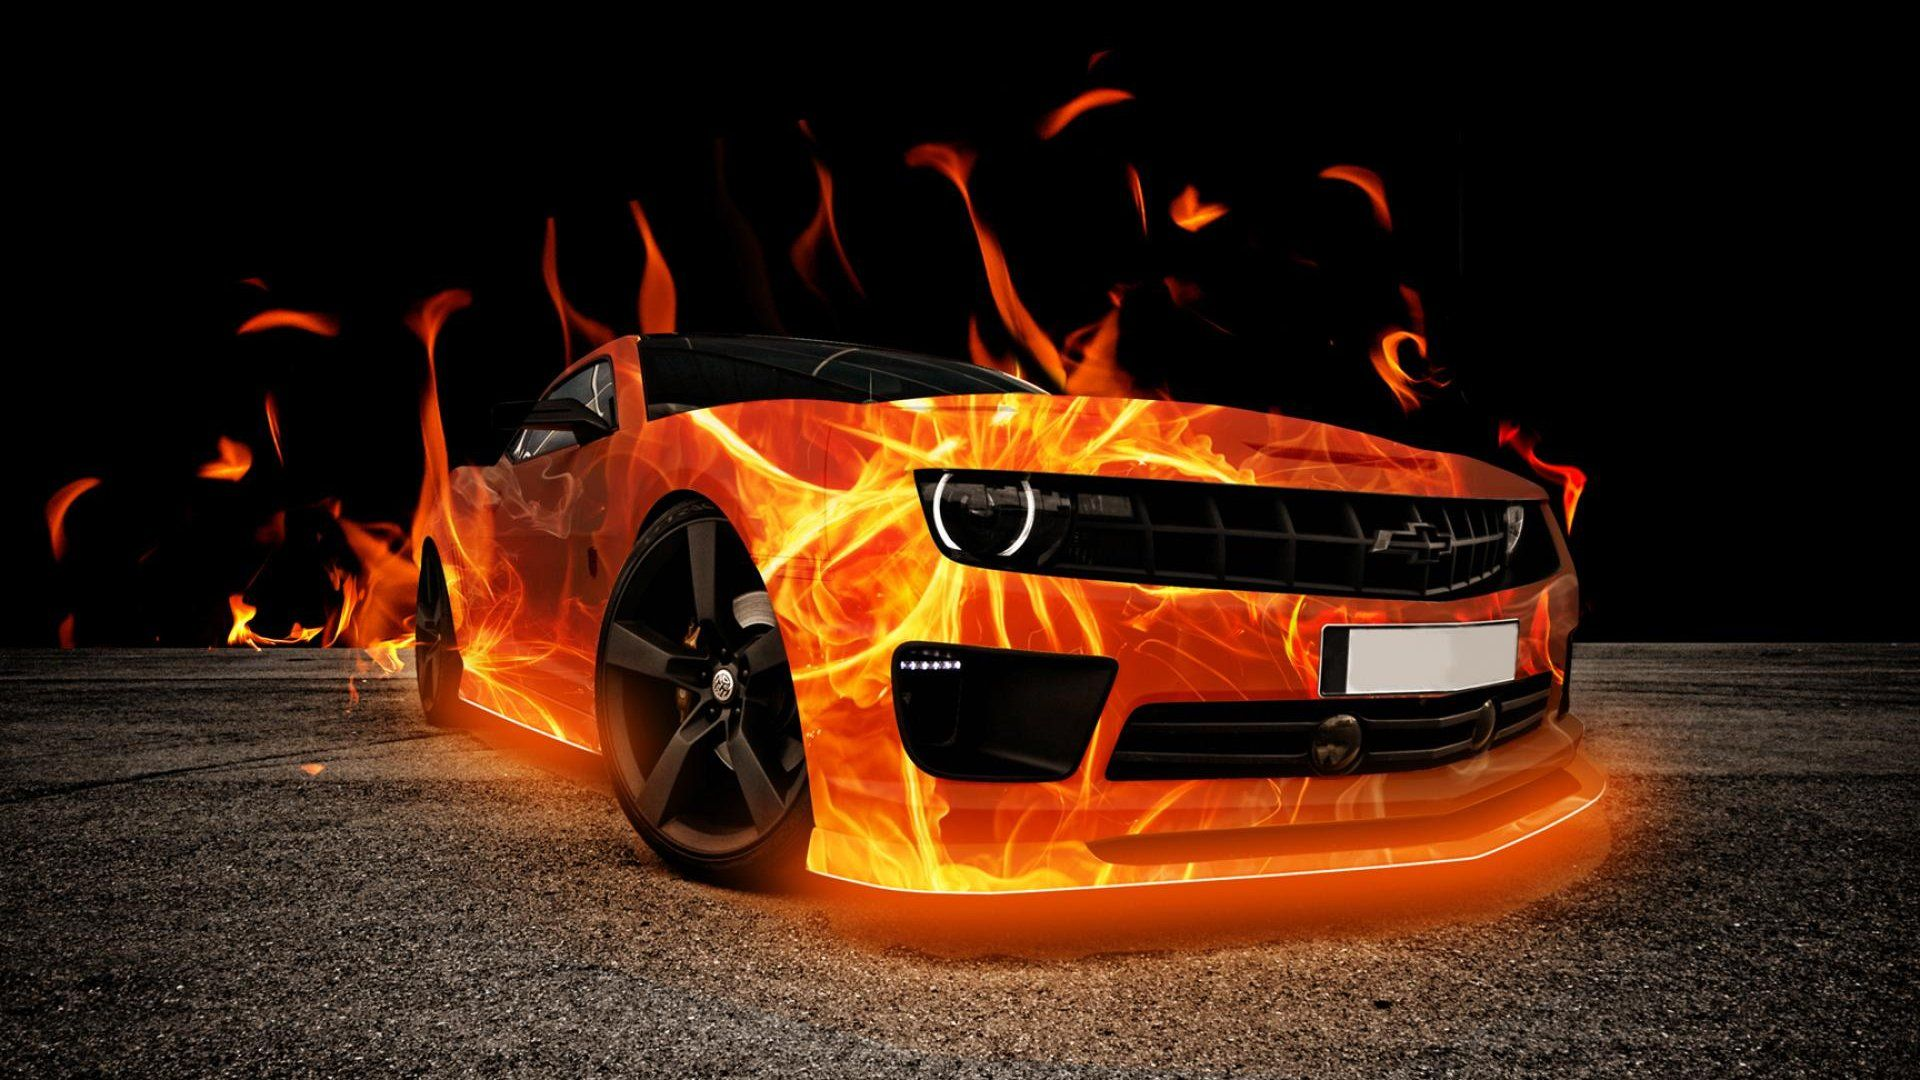 Chevlorete In Flame Sports Car Wallpaper Car Wallpapers 3d Wallpaper Cars